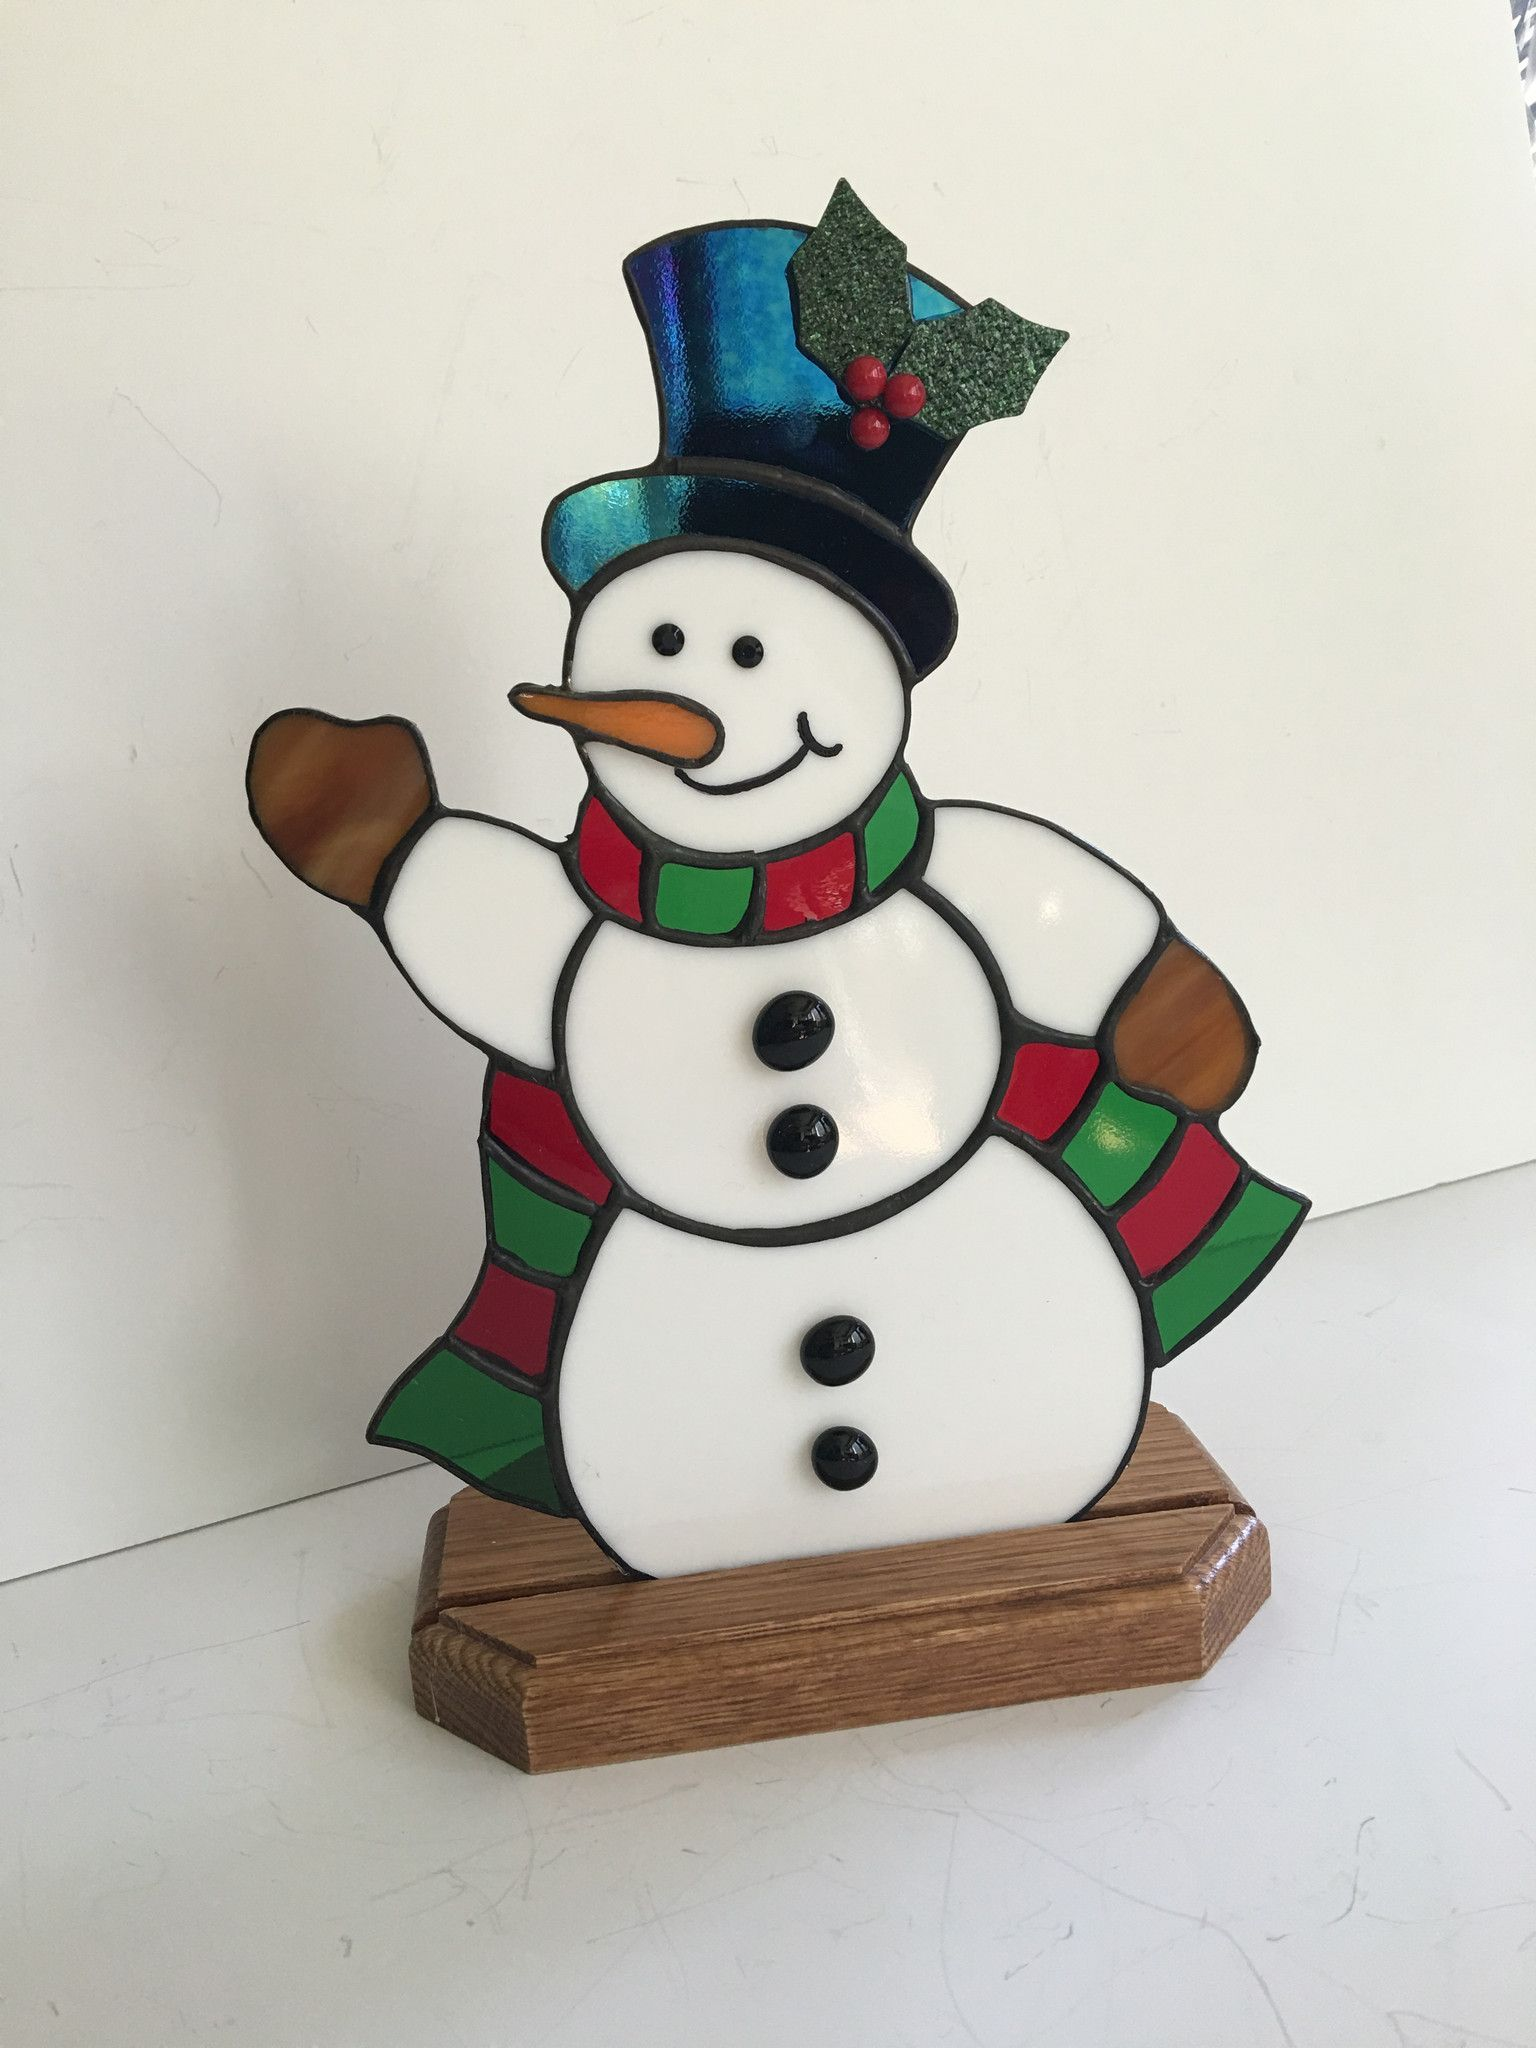 Handmade Stained Glass Snowman With Top Hat Suncatcher